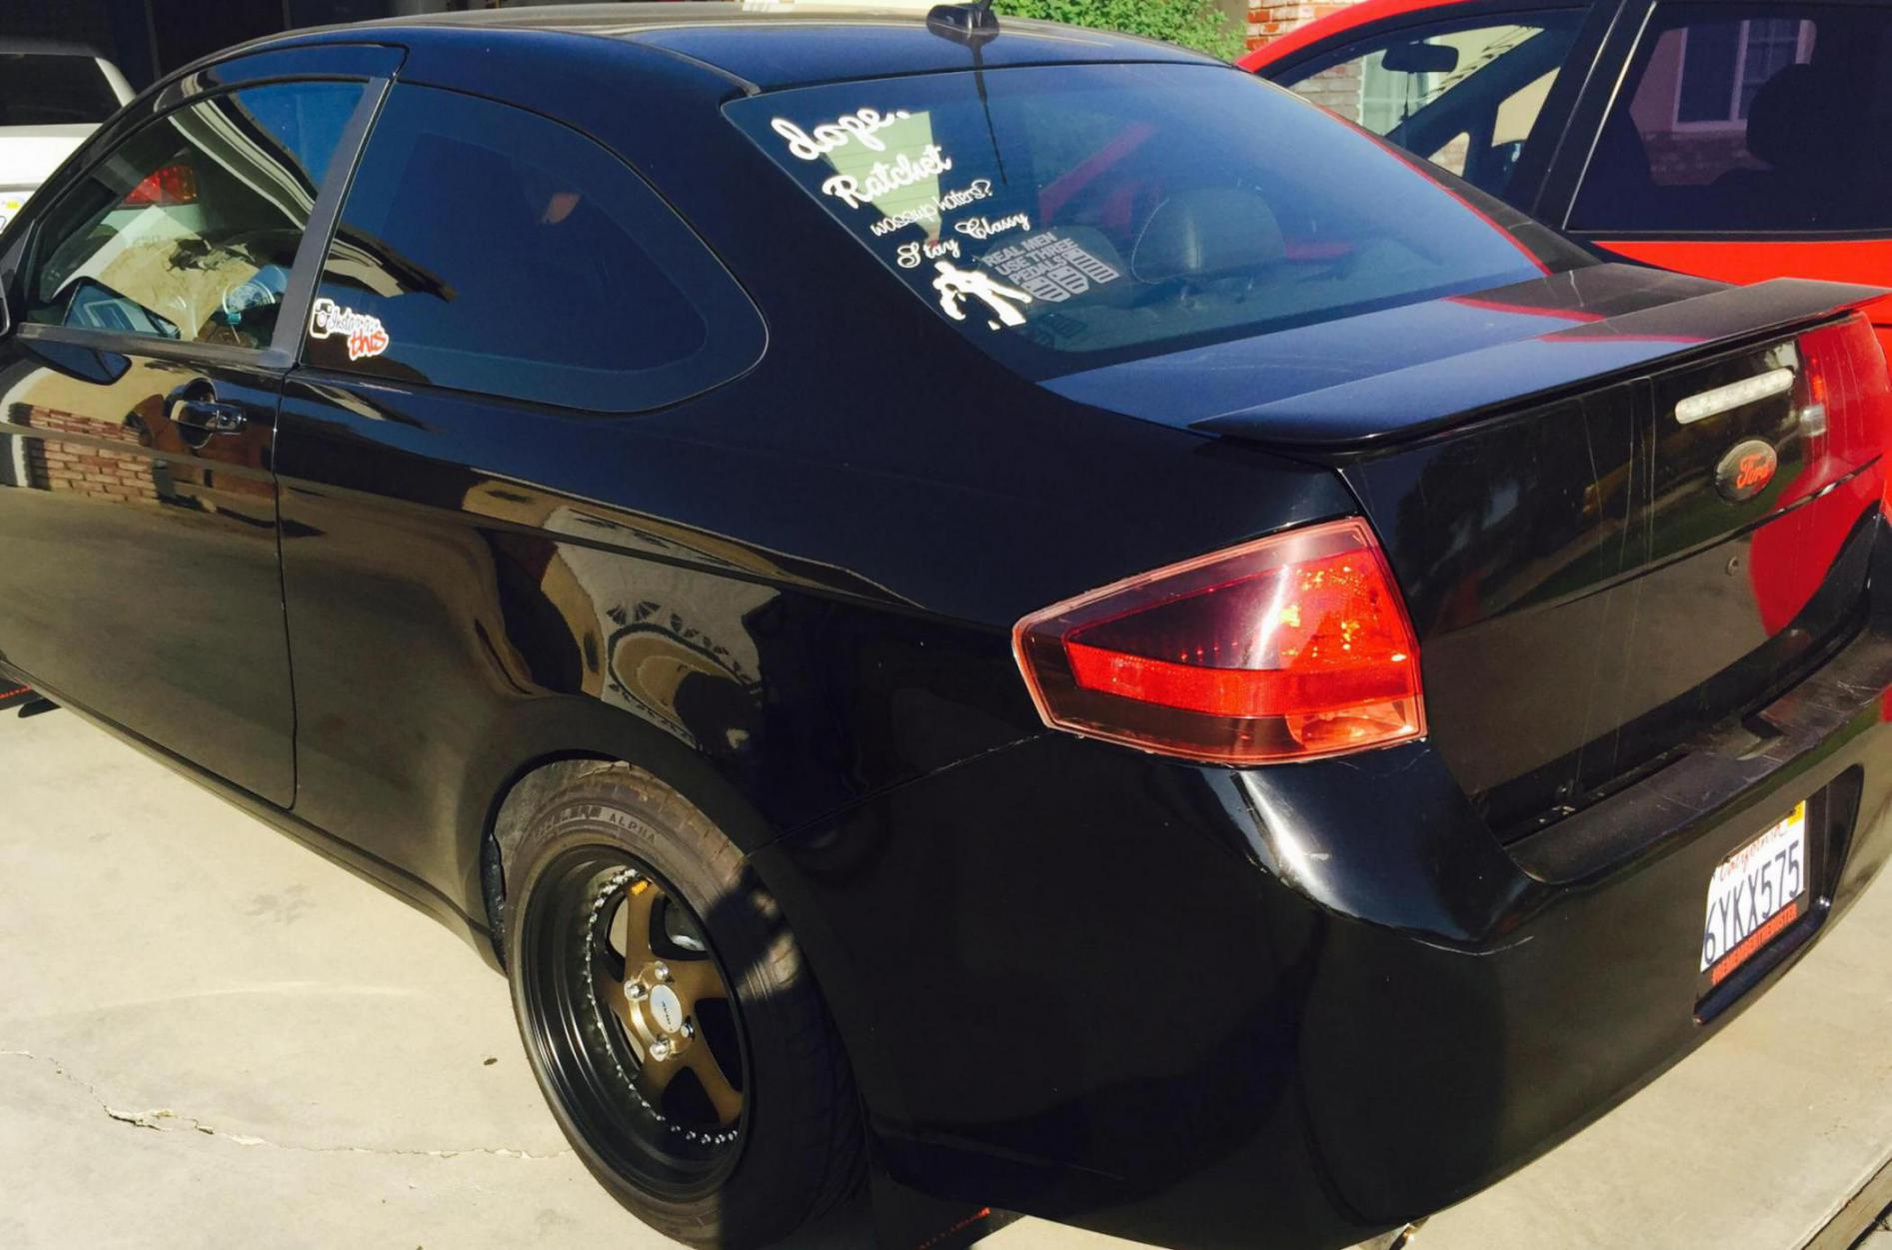 09 Ford Focus question?-image_1440084240757.jpg